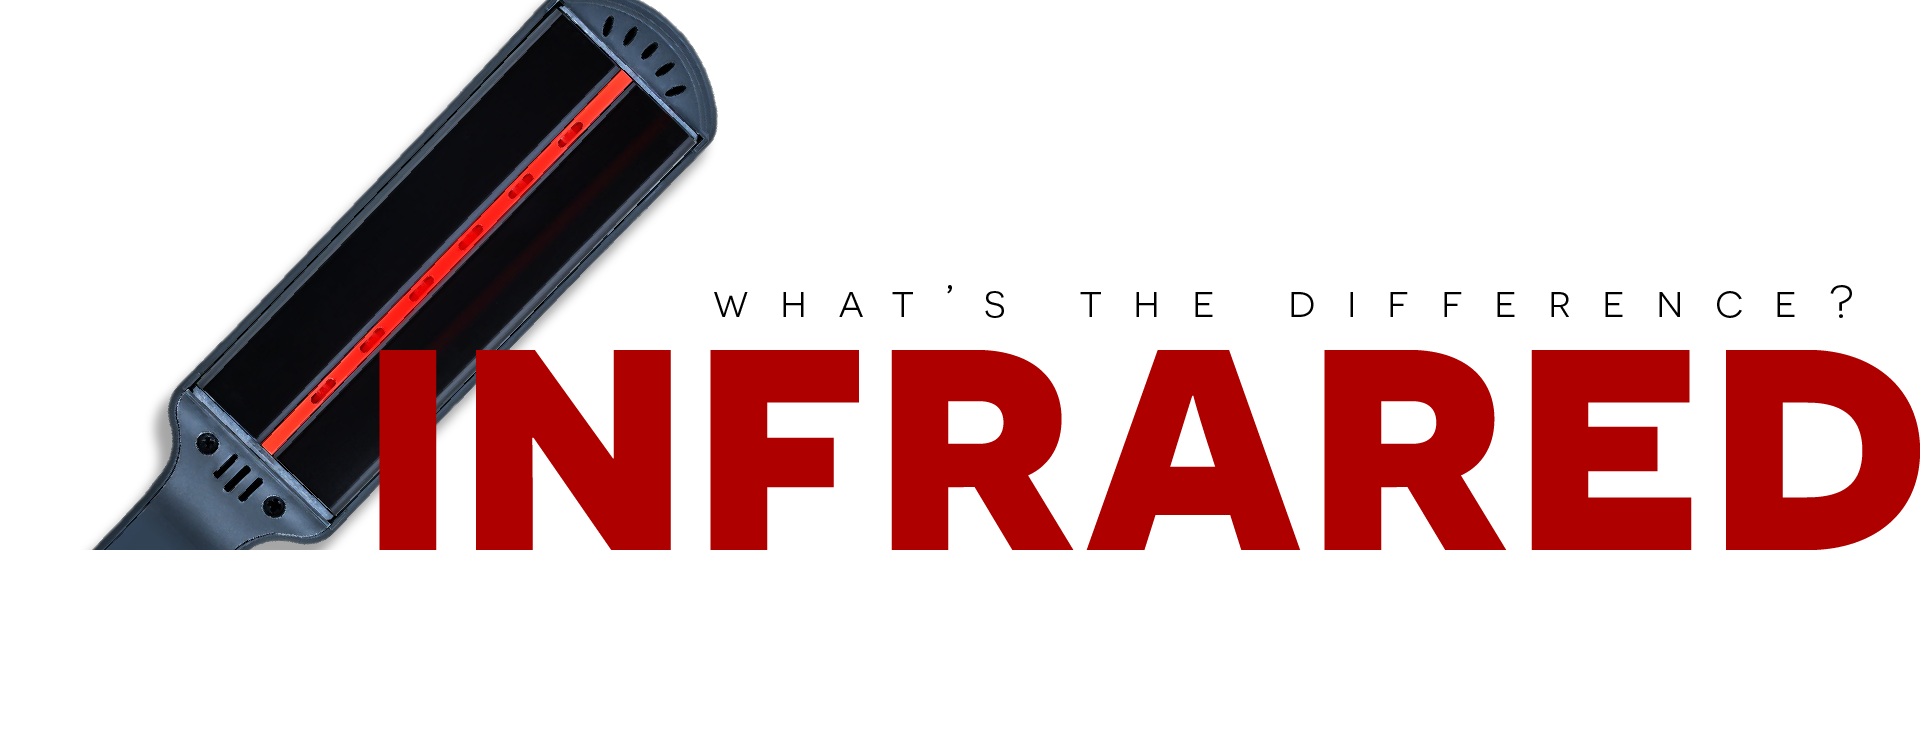 What is infrared?